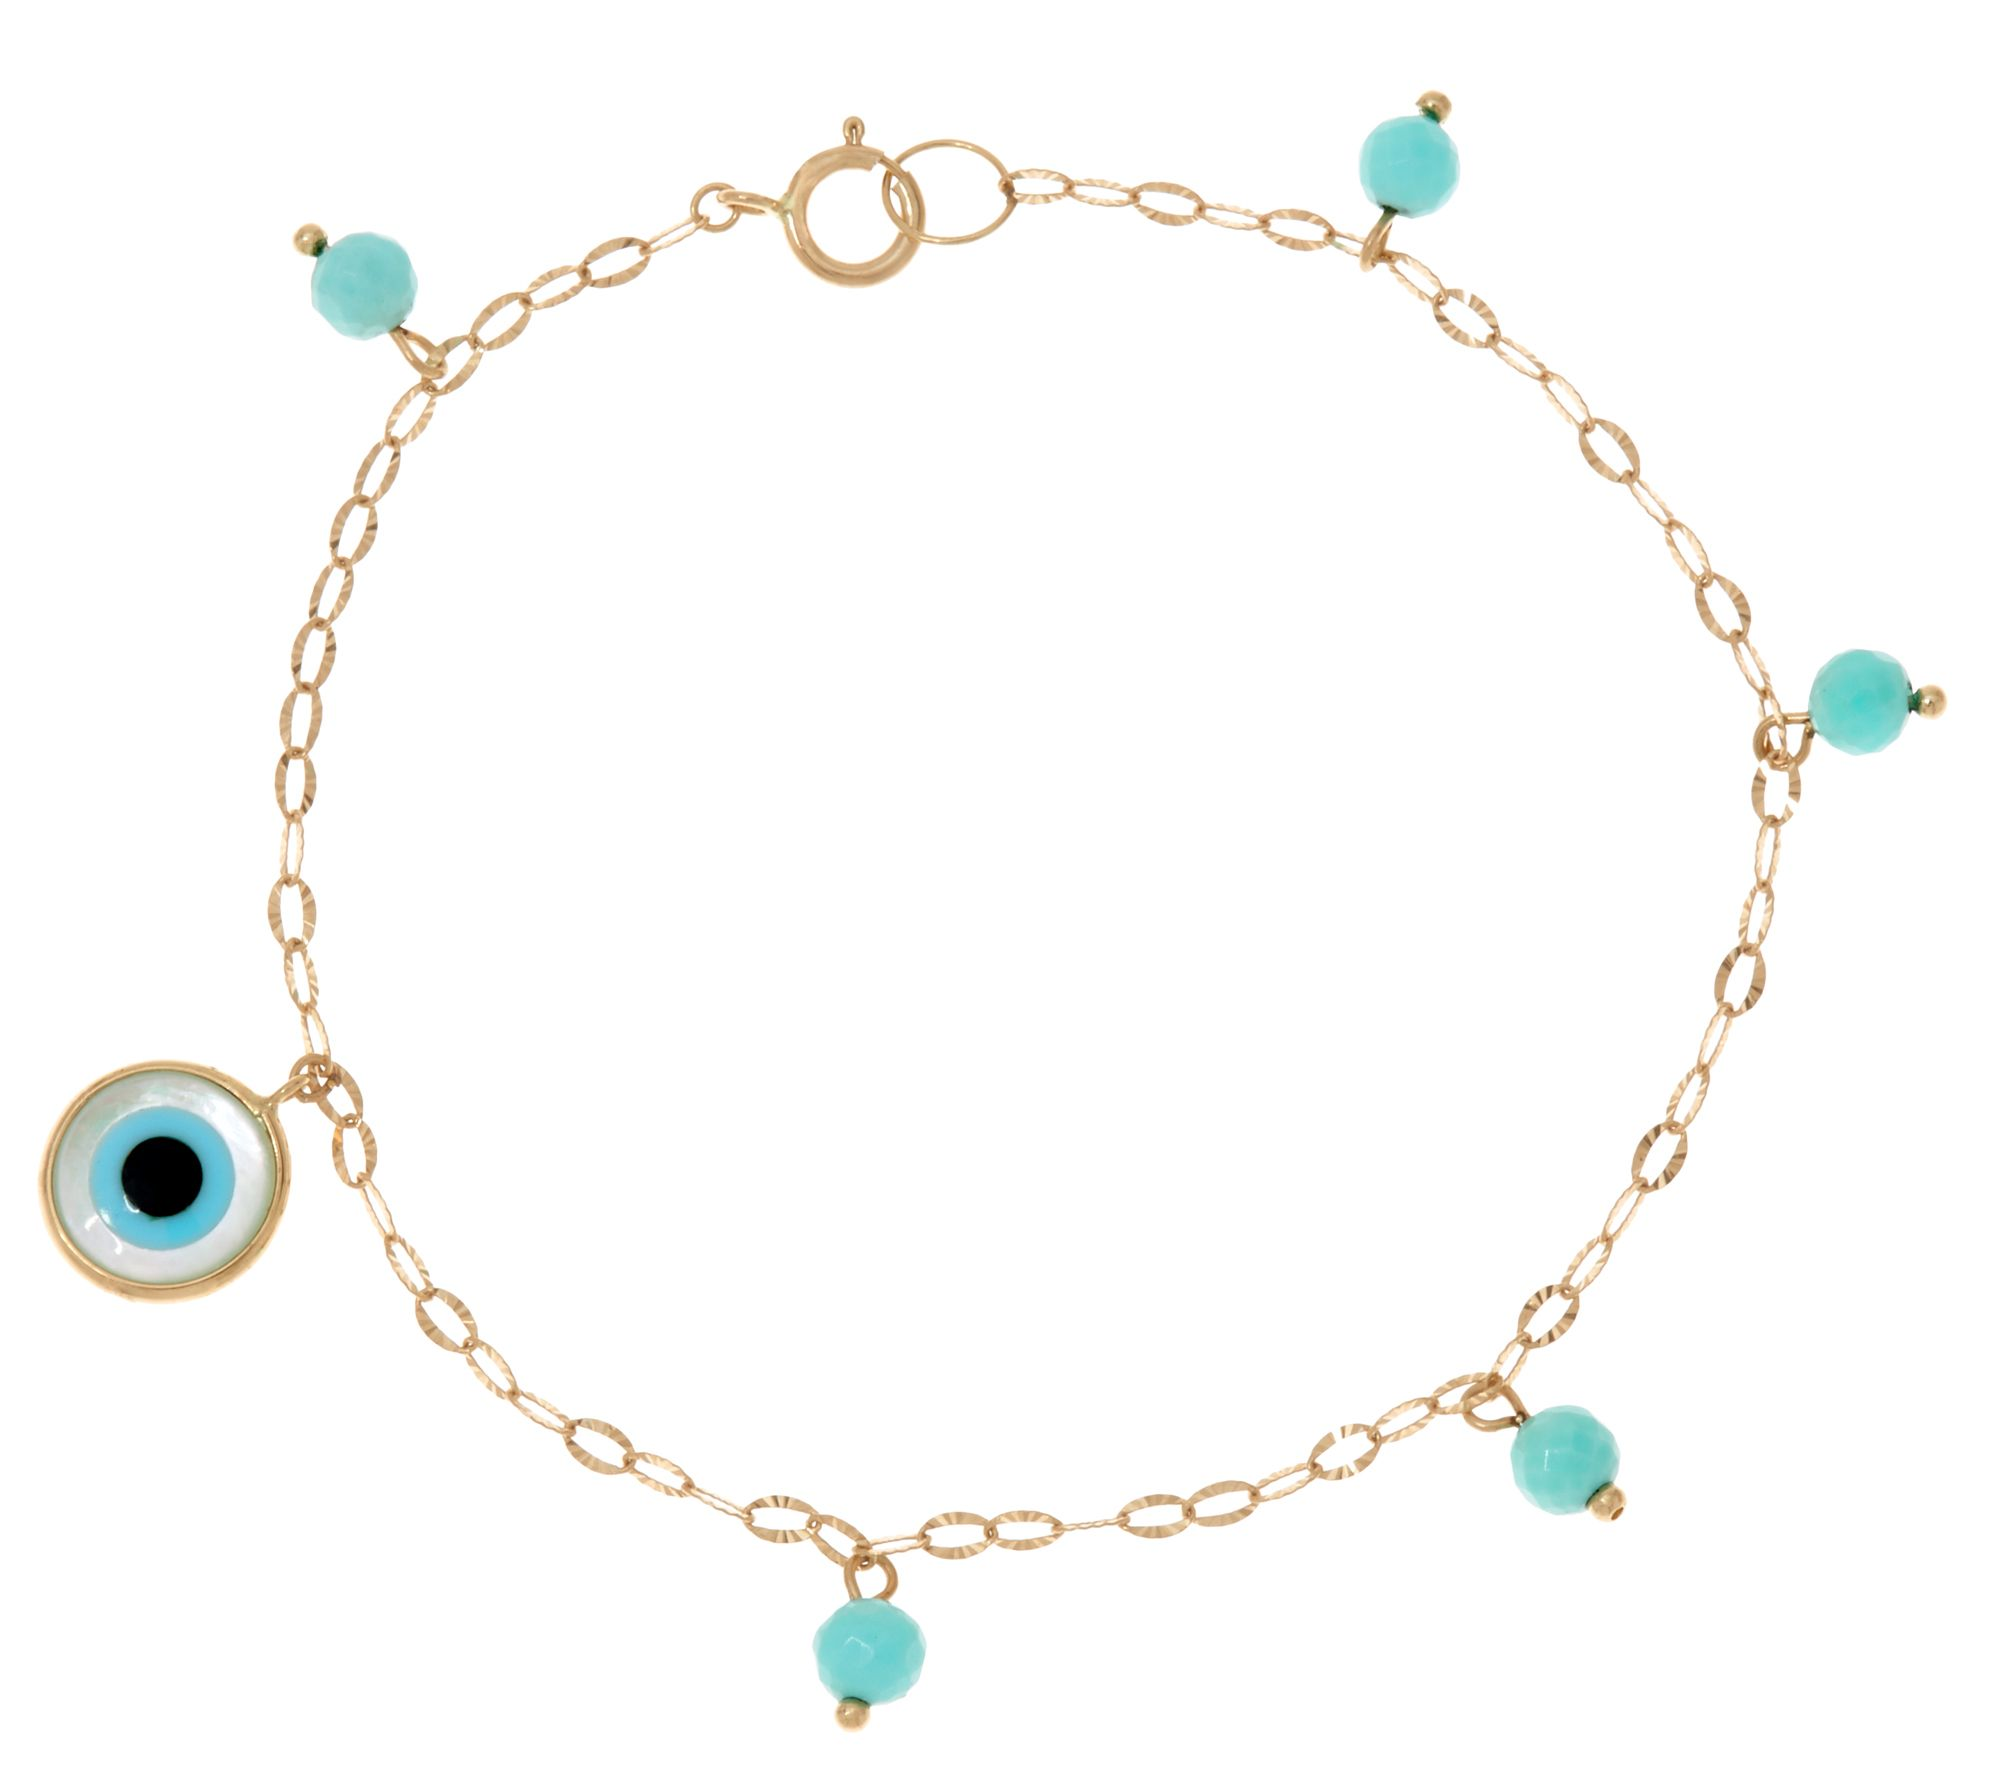 gold bracelets women wishbone bracelet anklet turquoise for luck olizz good ankle sideways and sybaris